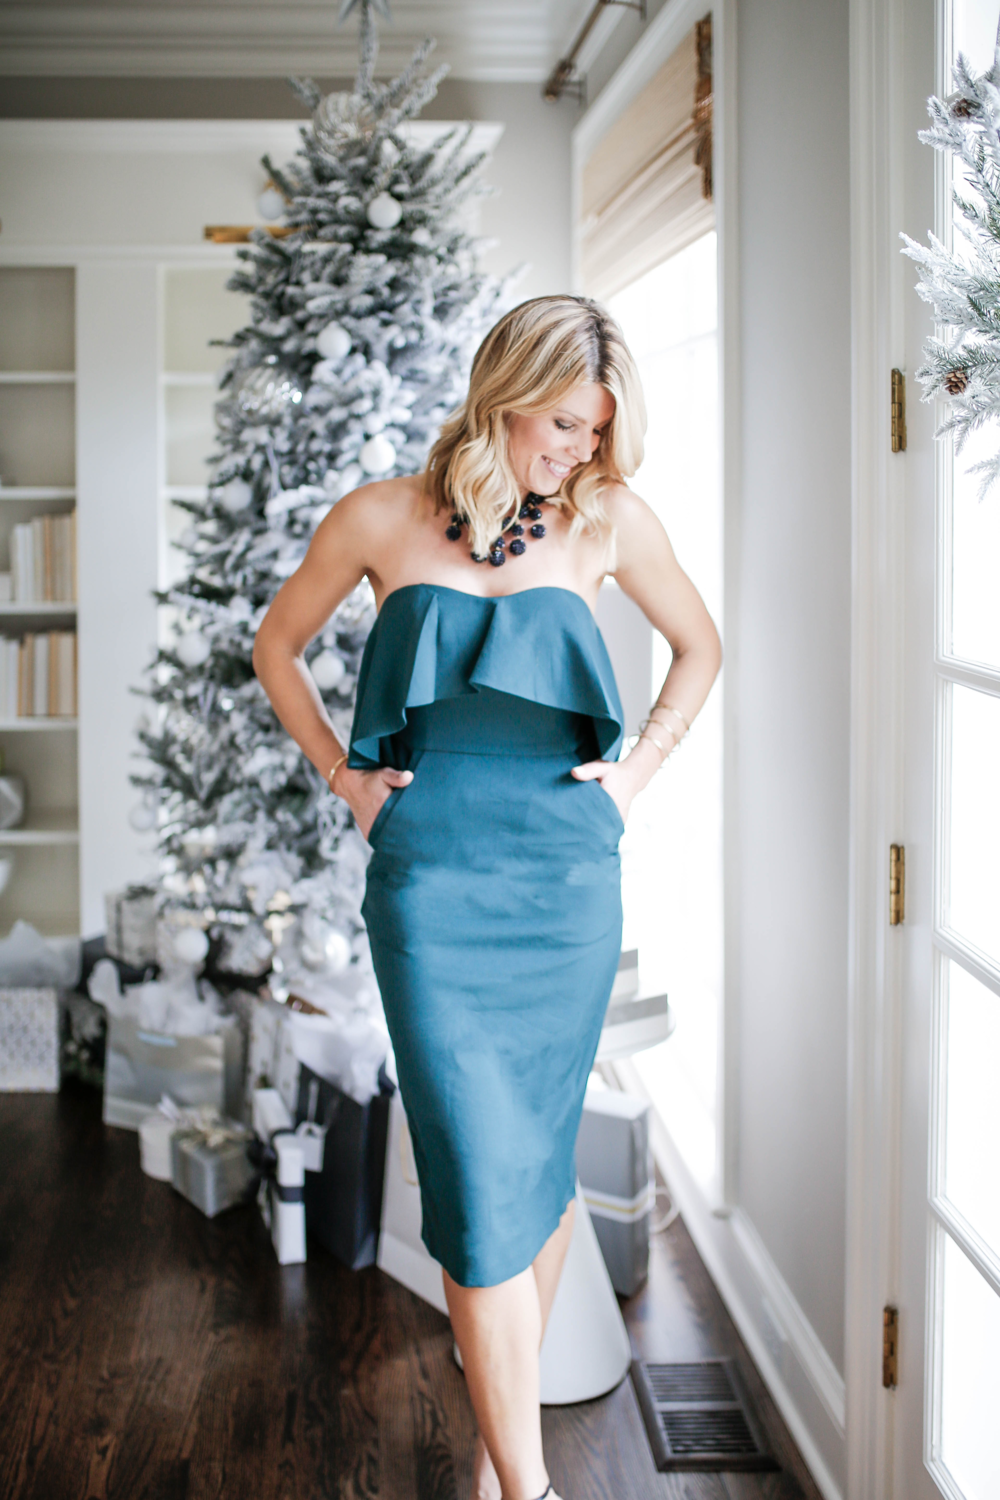 Green Strapless dress, what to wear to a holiday work party